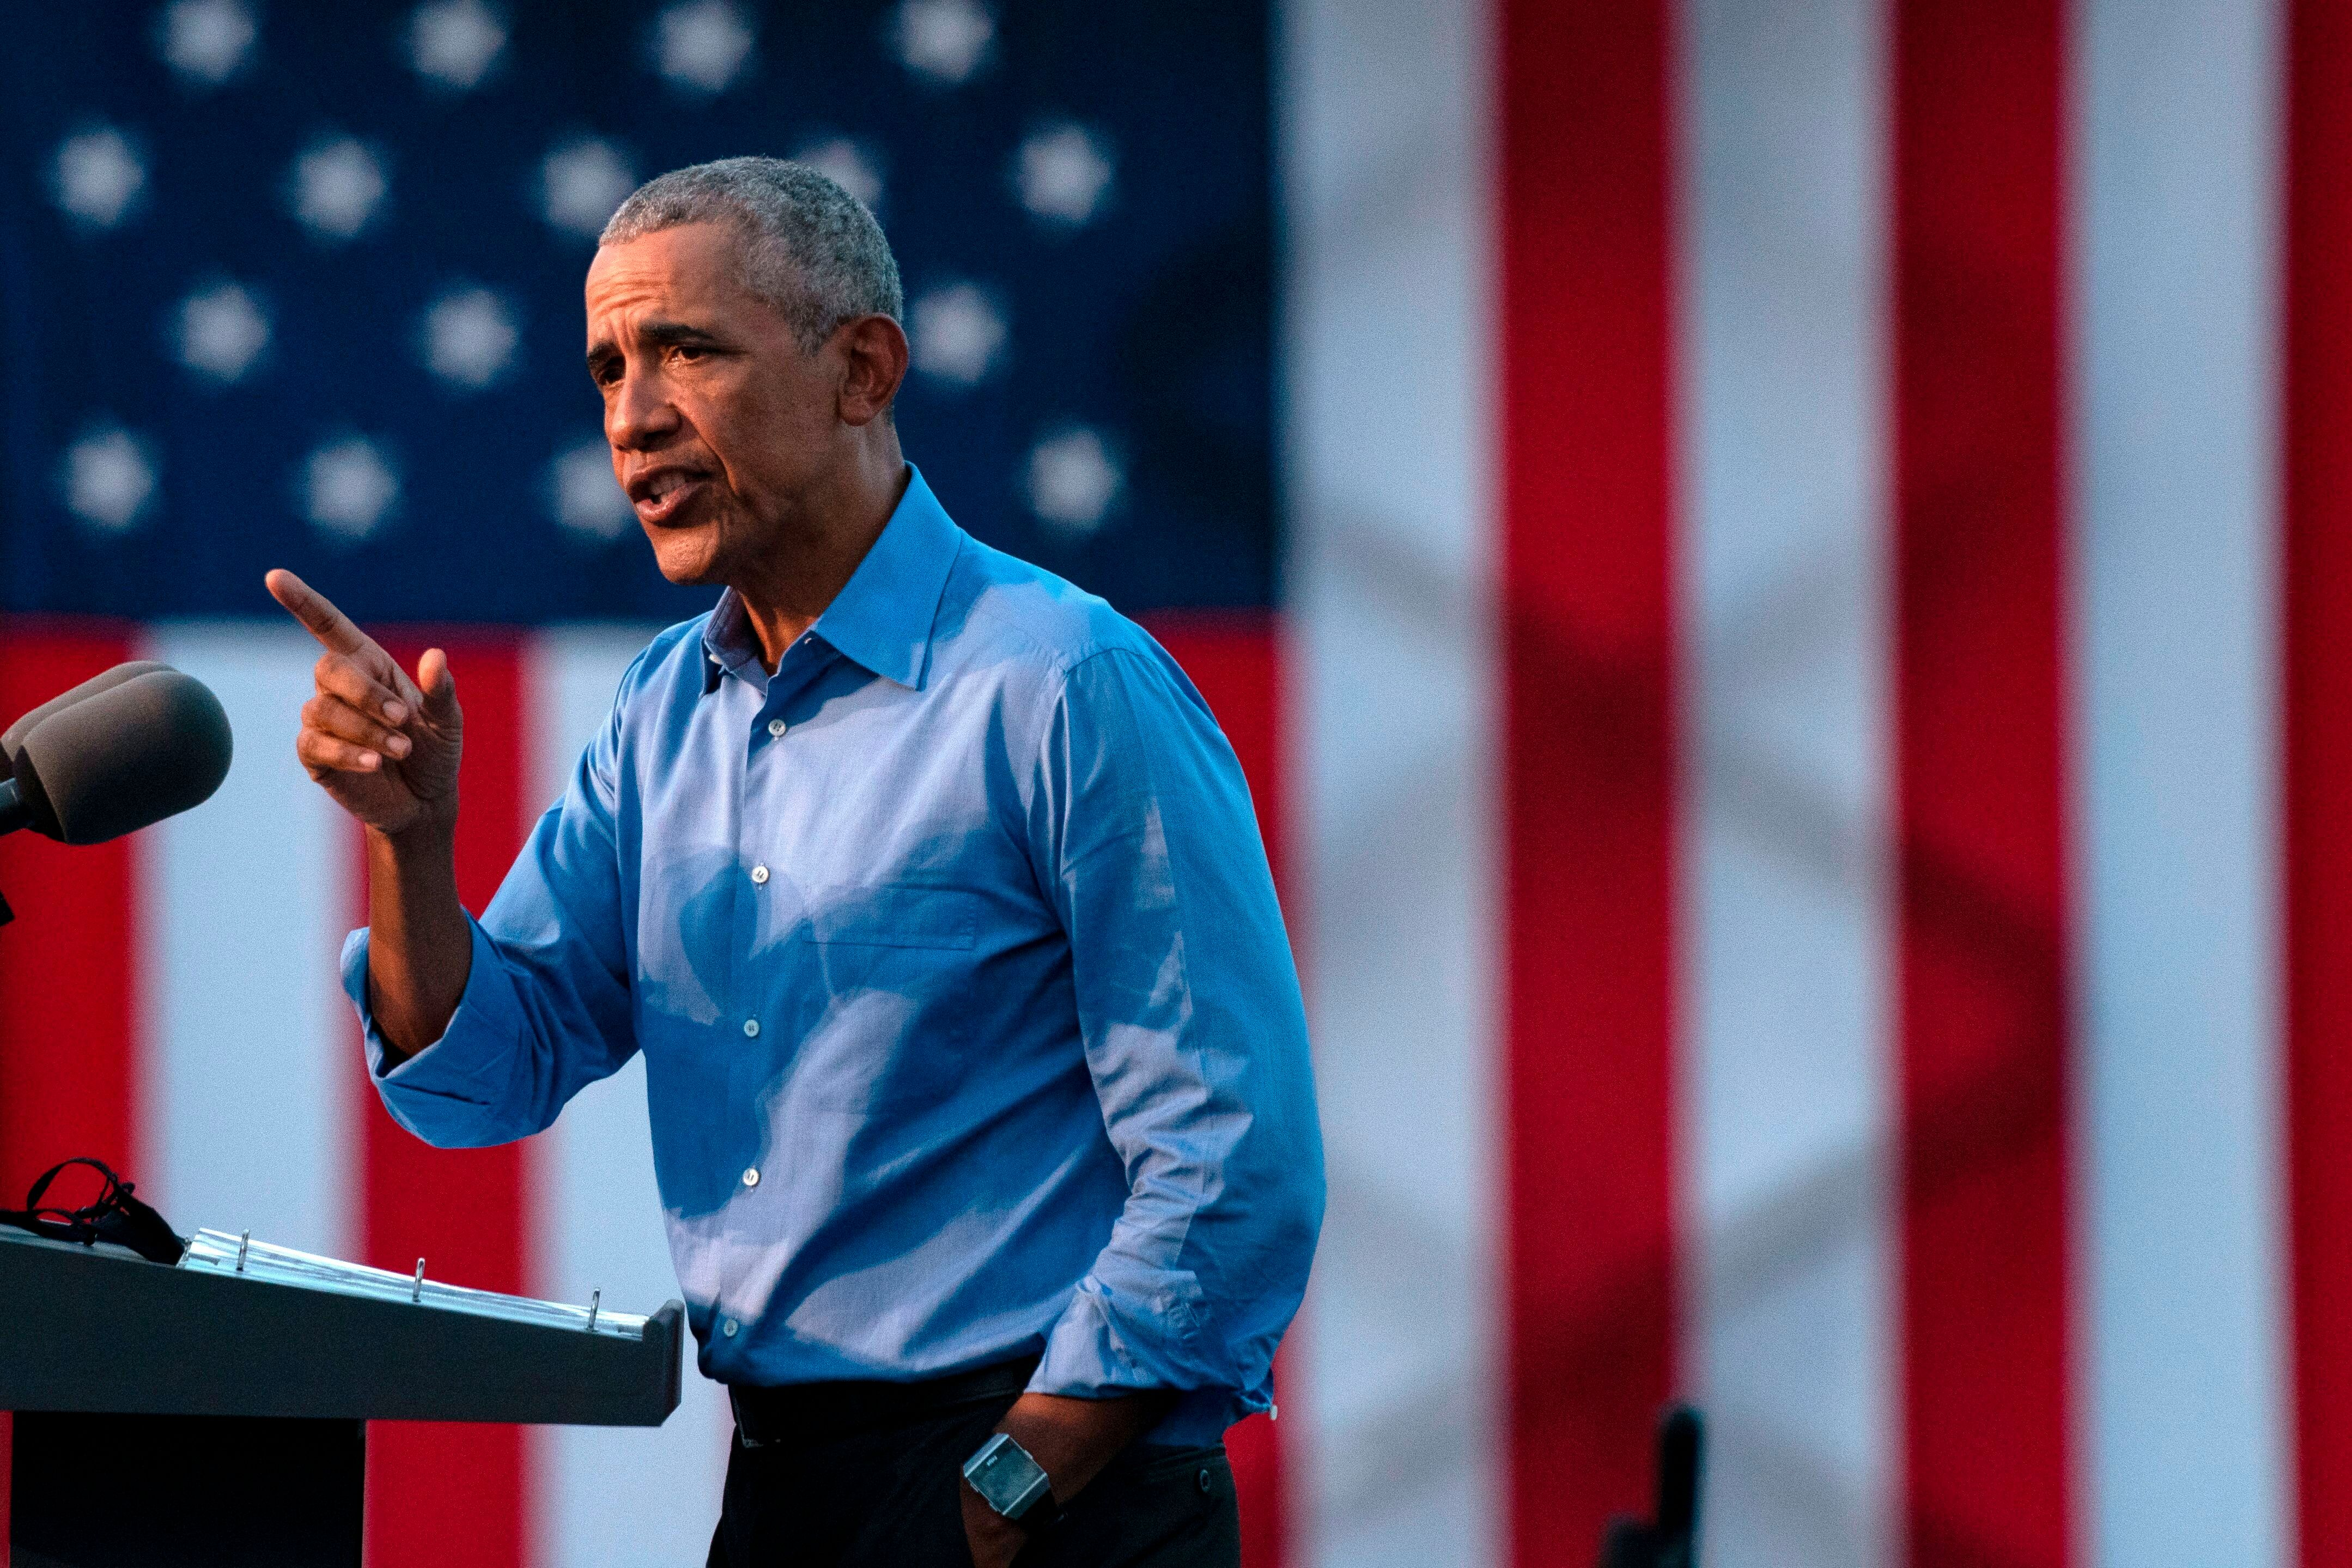 Obama: Trump Can't Even Protect Himself From The Coronavirus